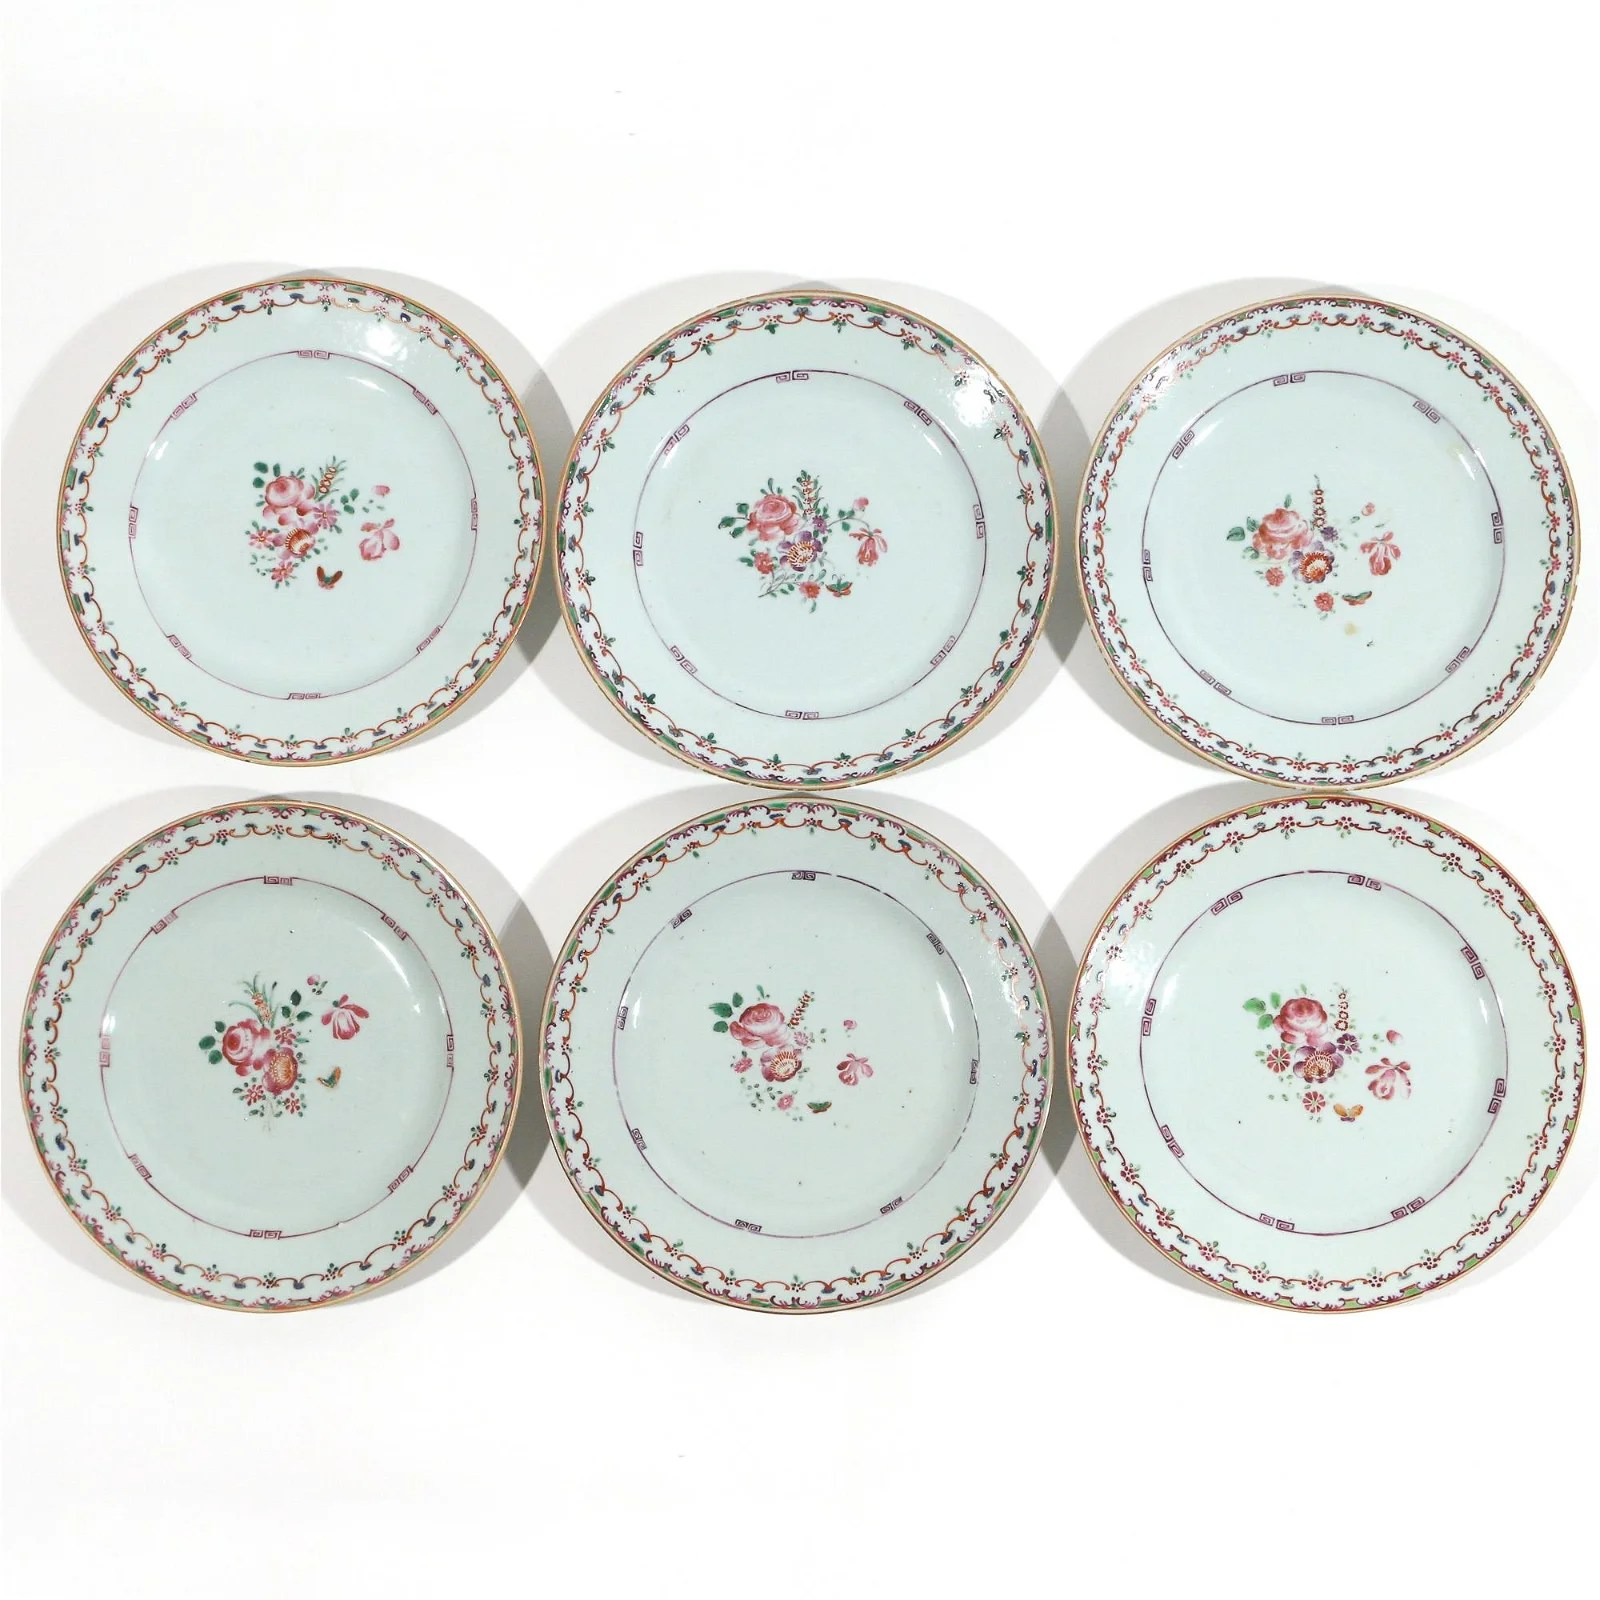 (6pc) CHINESE EXPORT PORCELAIN PLATES